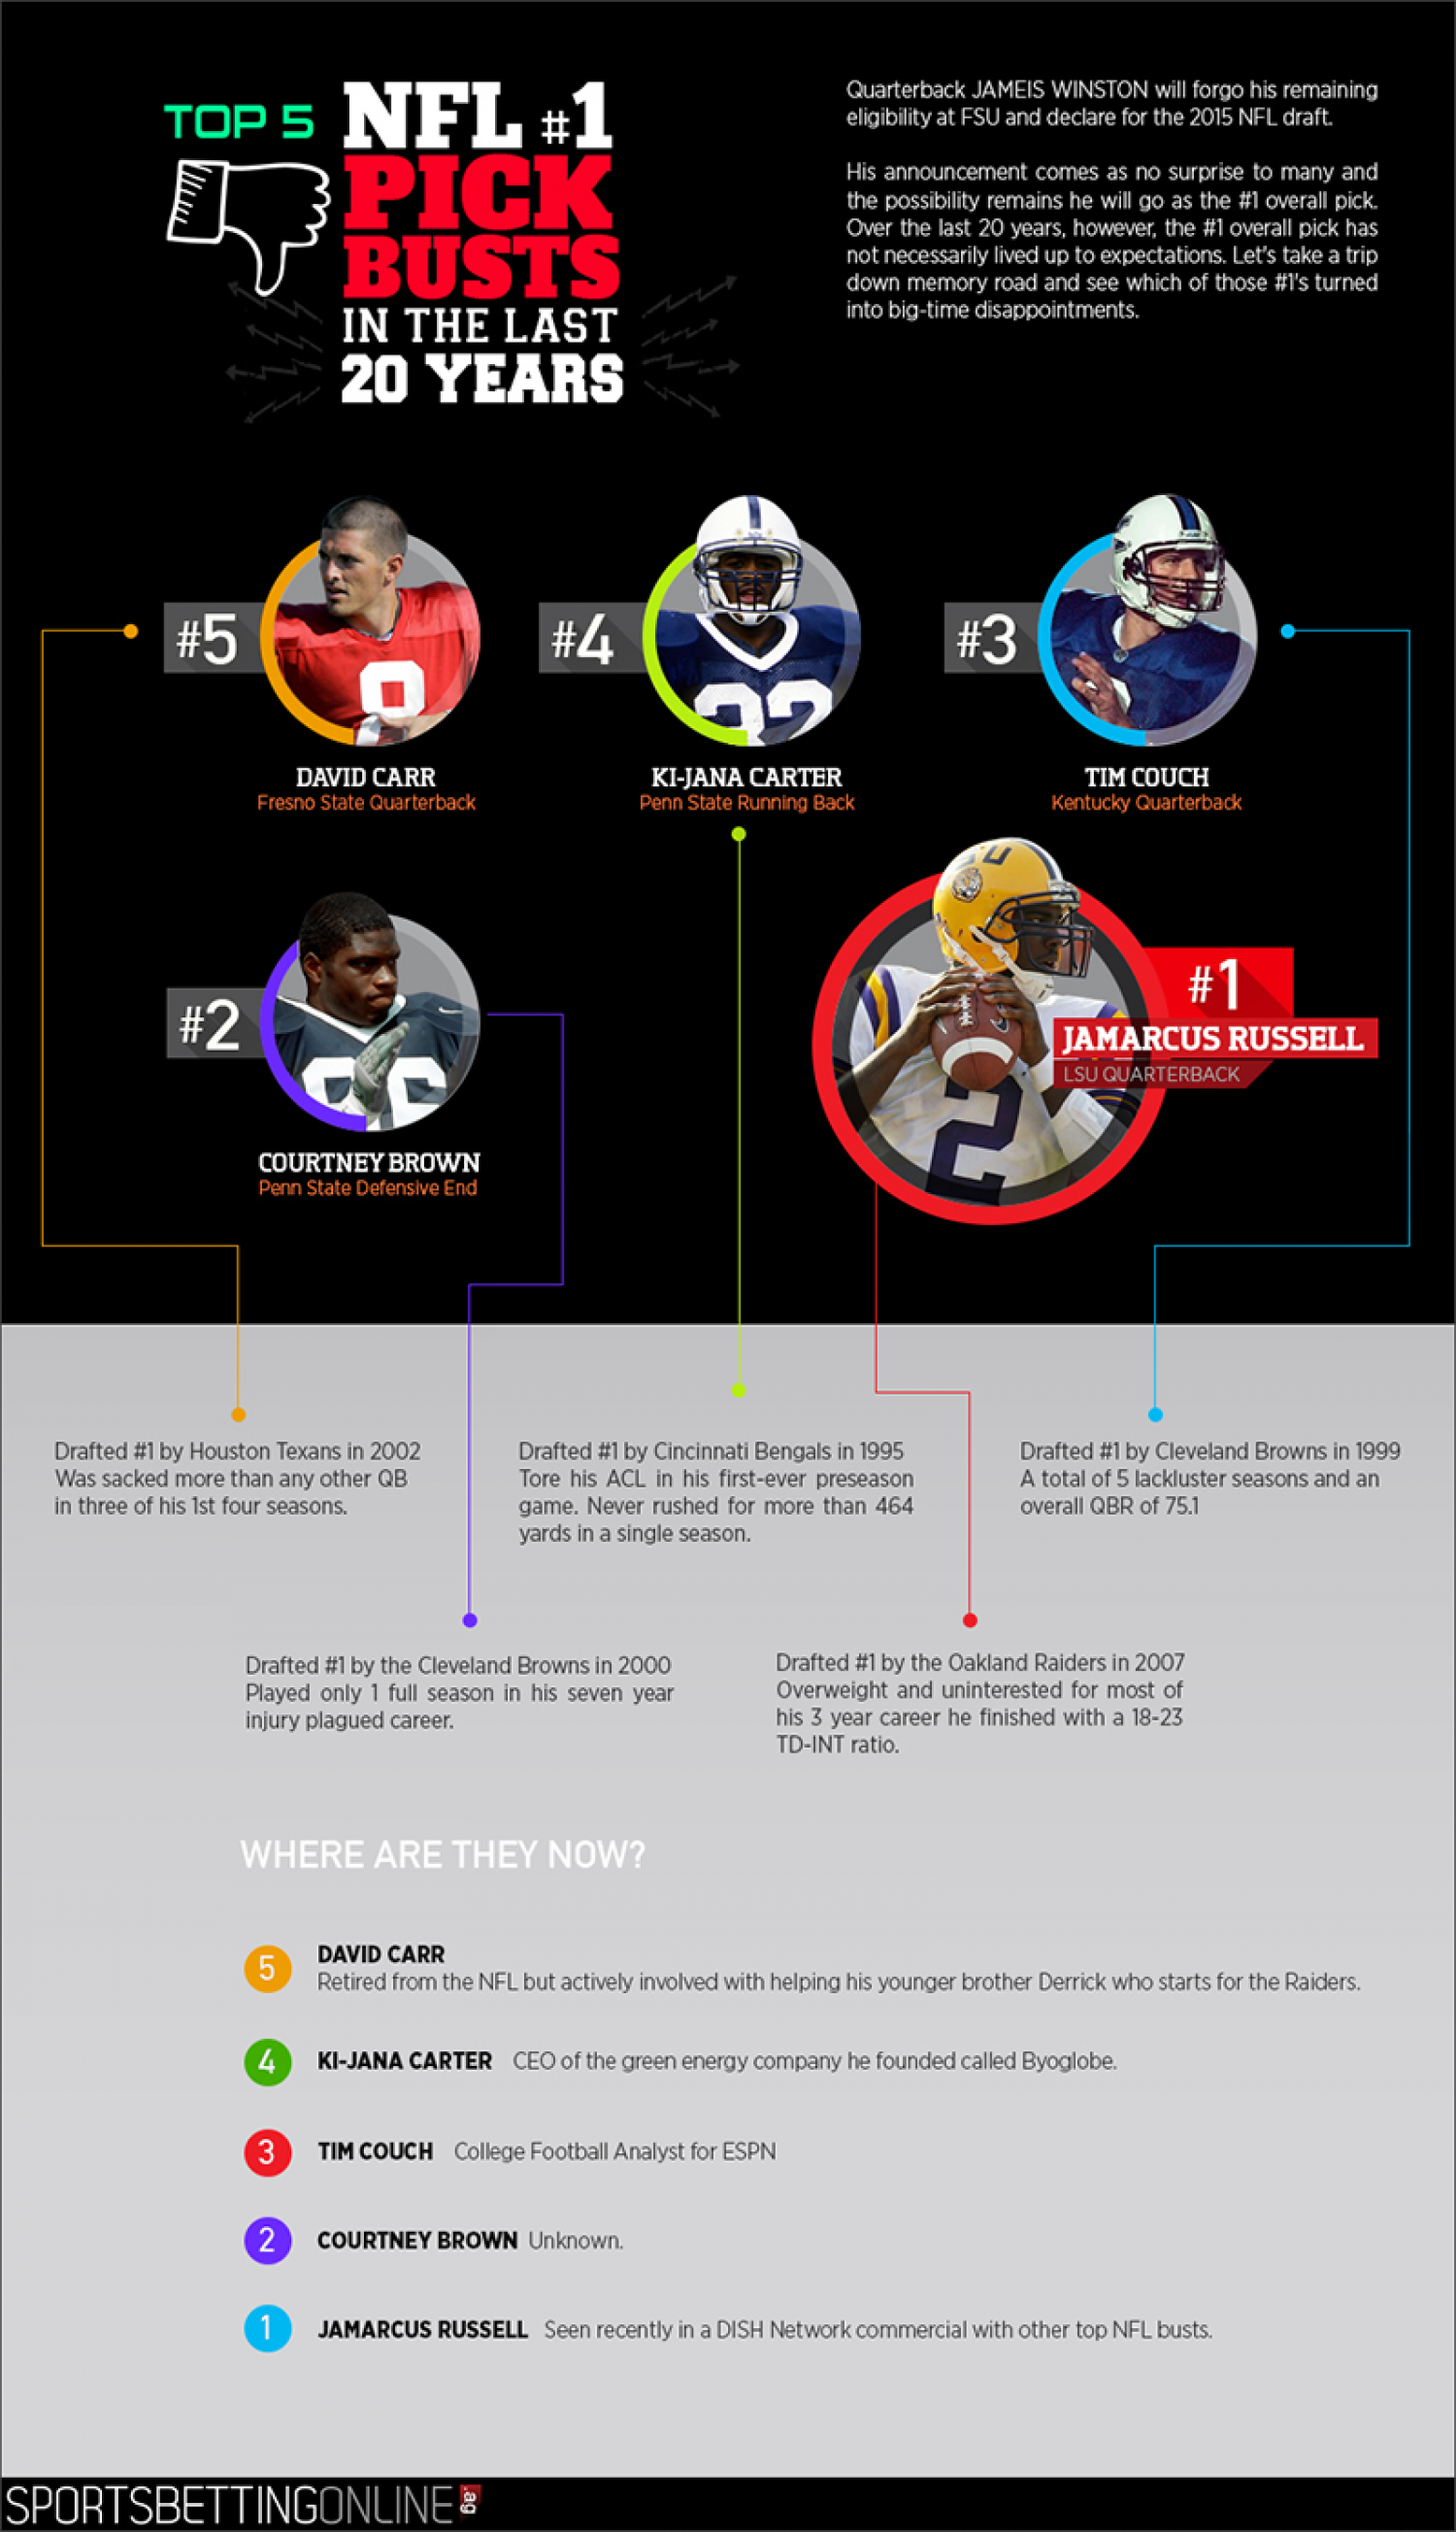 Top 5 NFL #1 Pick Busts in the Last 20 Years Infographic